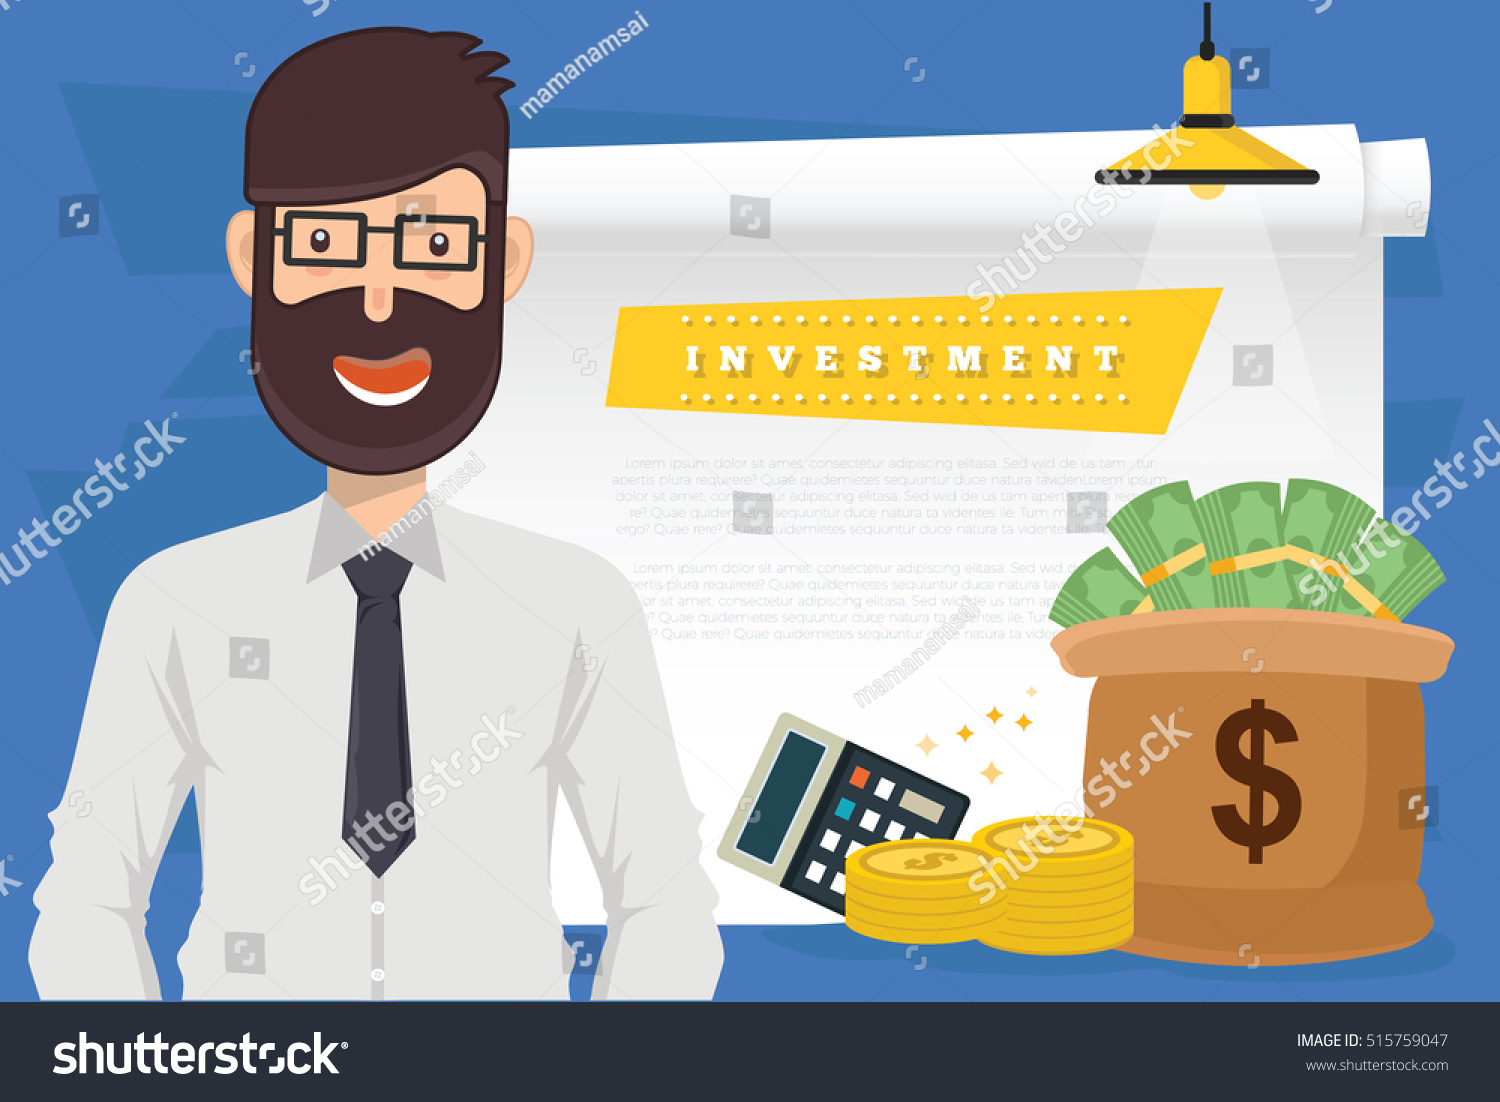 stocks investing and laws essay Introduction to stocks search search the site search search search go stocks understanding stocks trading investing in stocks - information center.